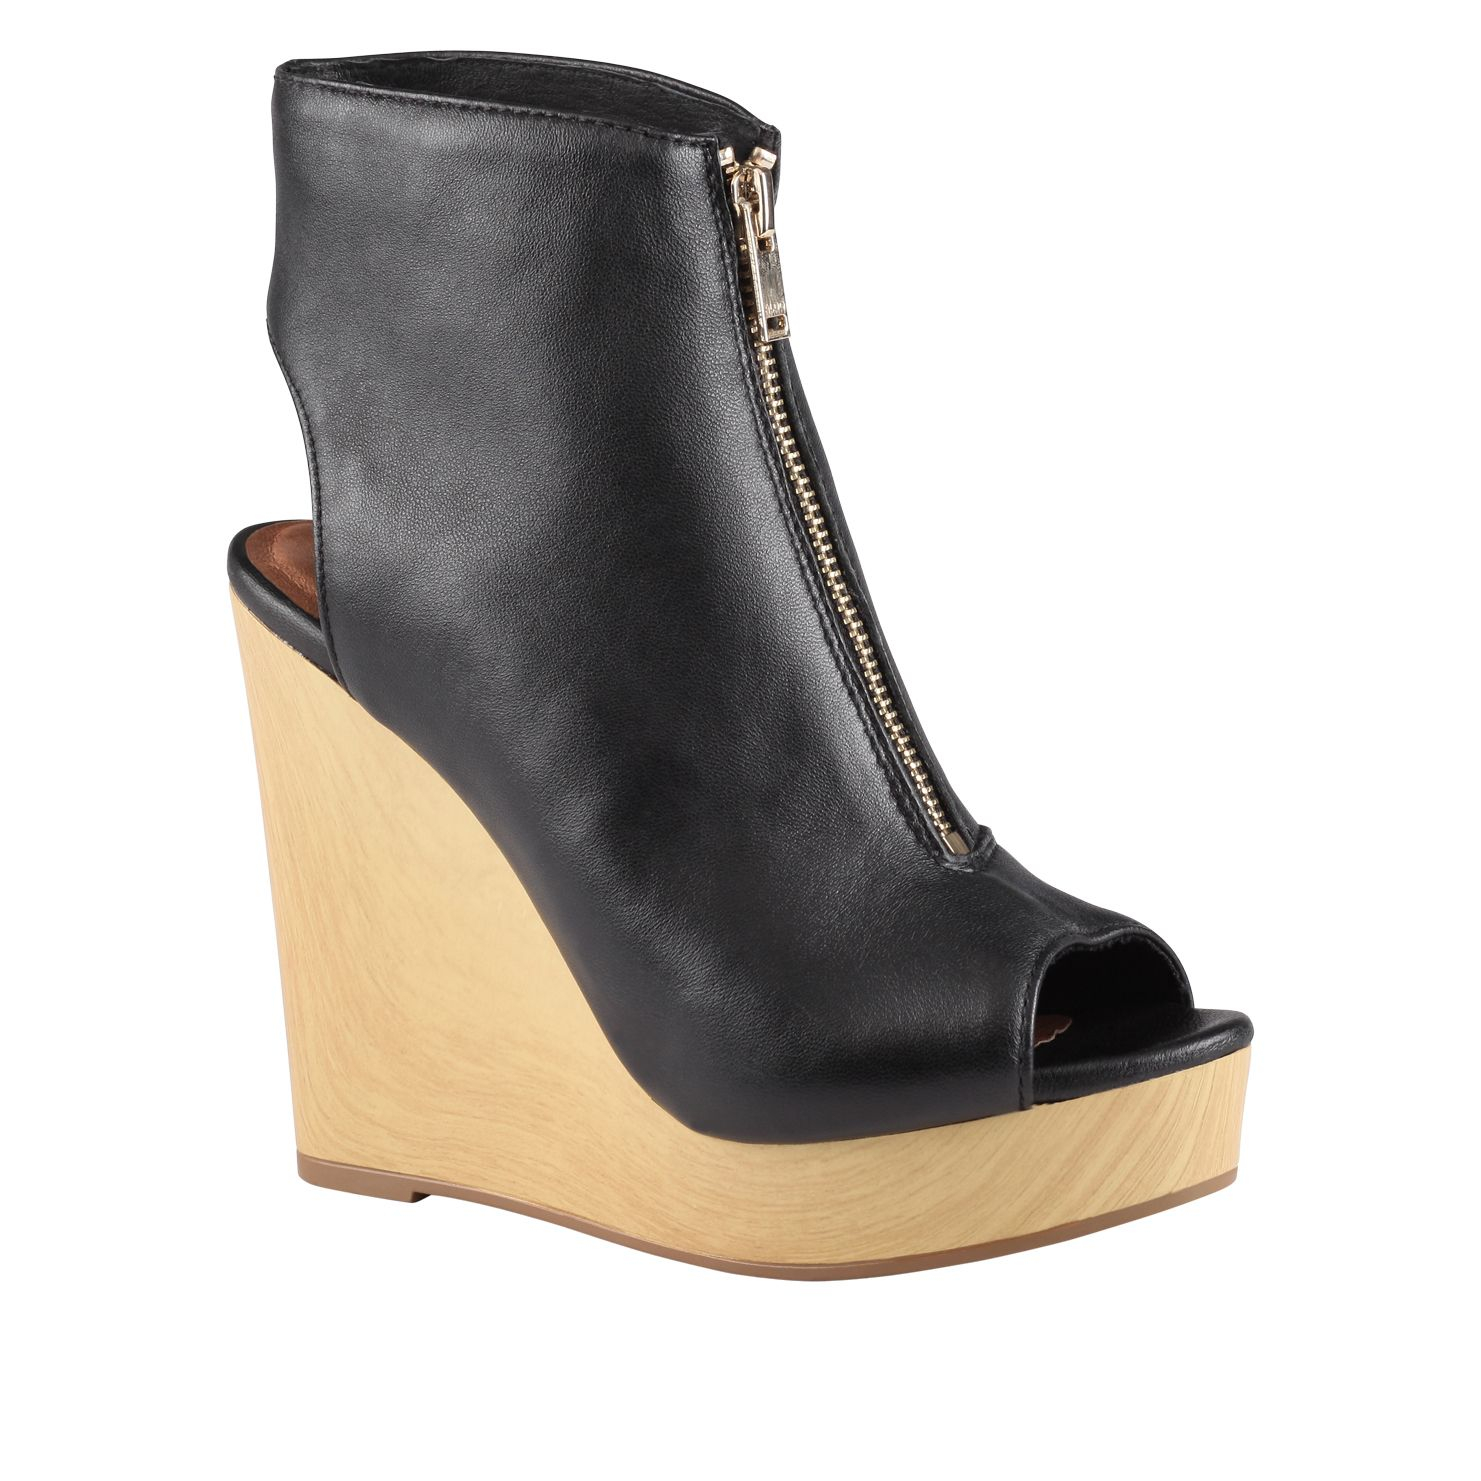 aldo zappia wedge peep toe boots in black lyst